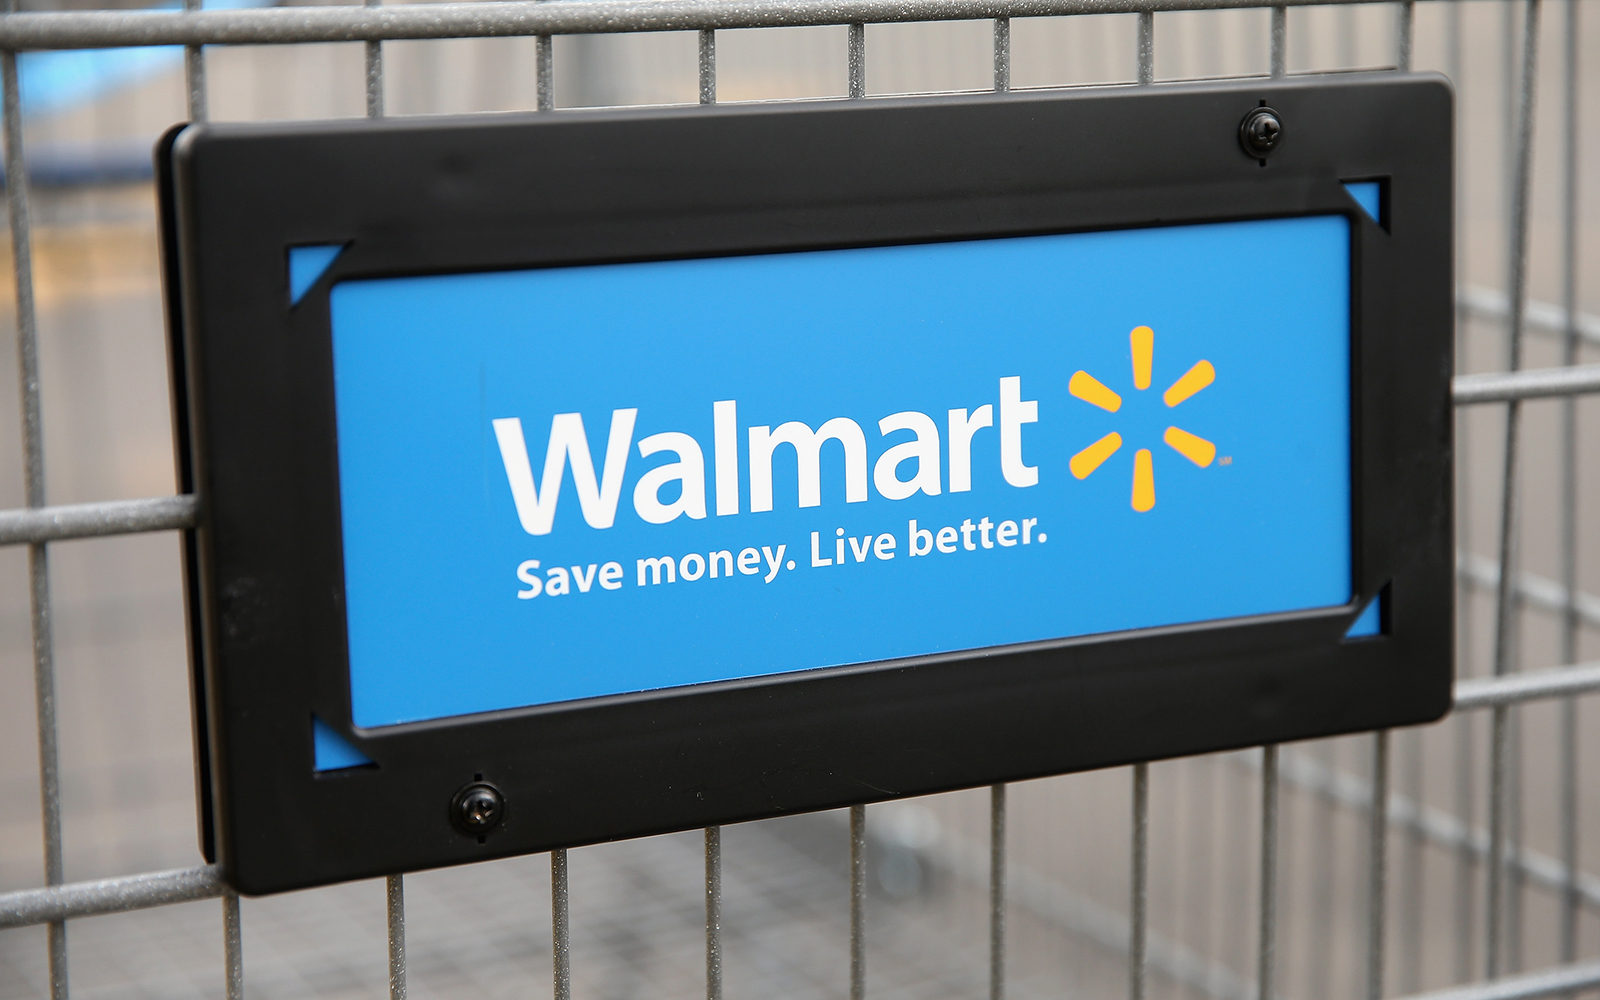 How to Get the Most Out of Walmart's Cyber Monday Deals